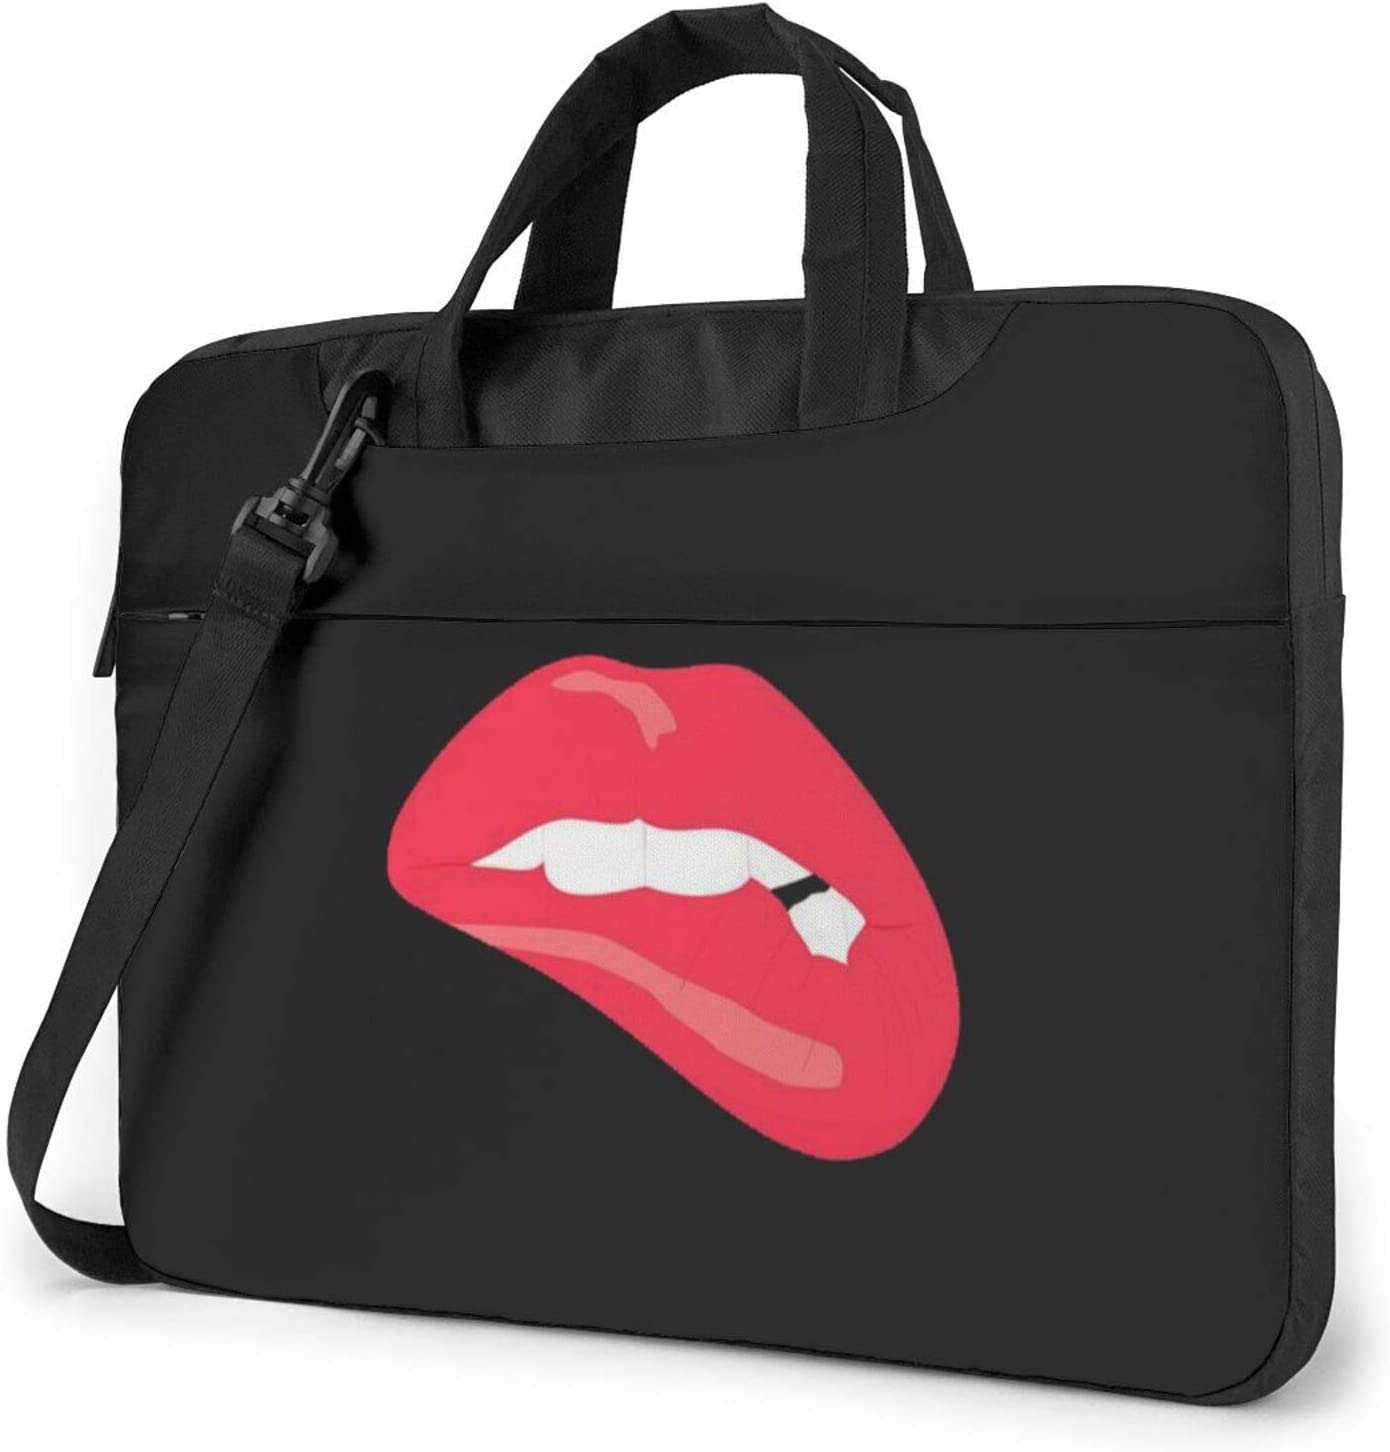 13 inch Laptop Case Bag Sleeve for Men Woman Waterproof Computer Cases for Laptops Laptop Carrying Case for Hp MacBook Pro Lenovo Dell Notebook Chromeboo Ultrabook(Lip Lip-Biting Black)